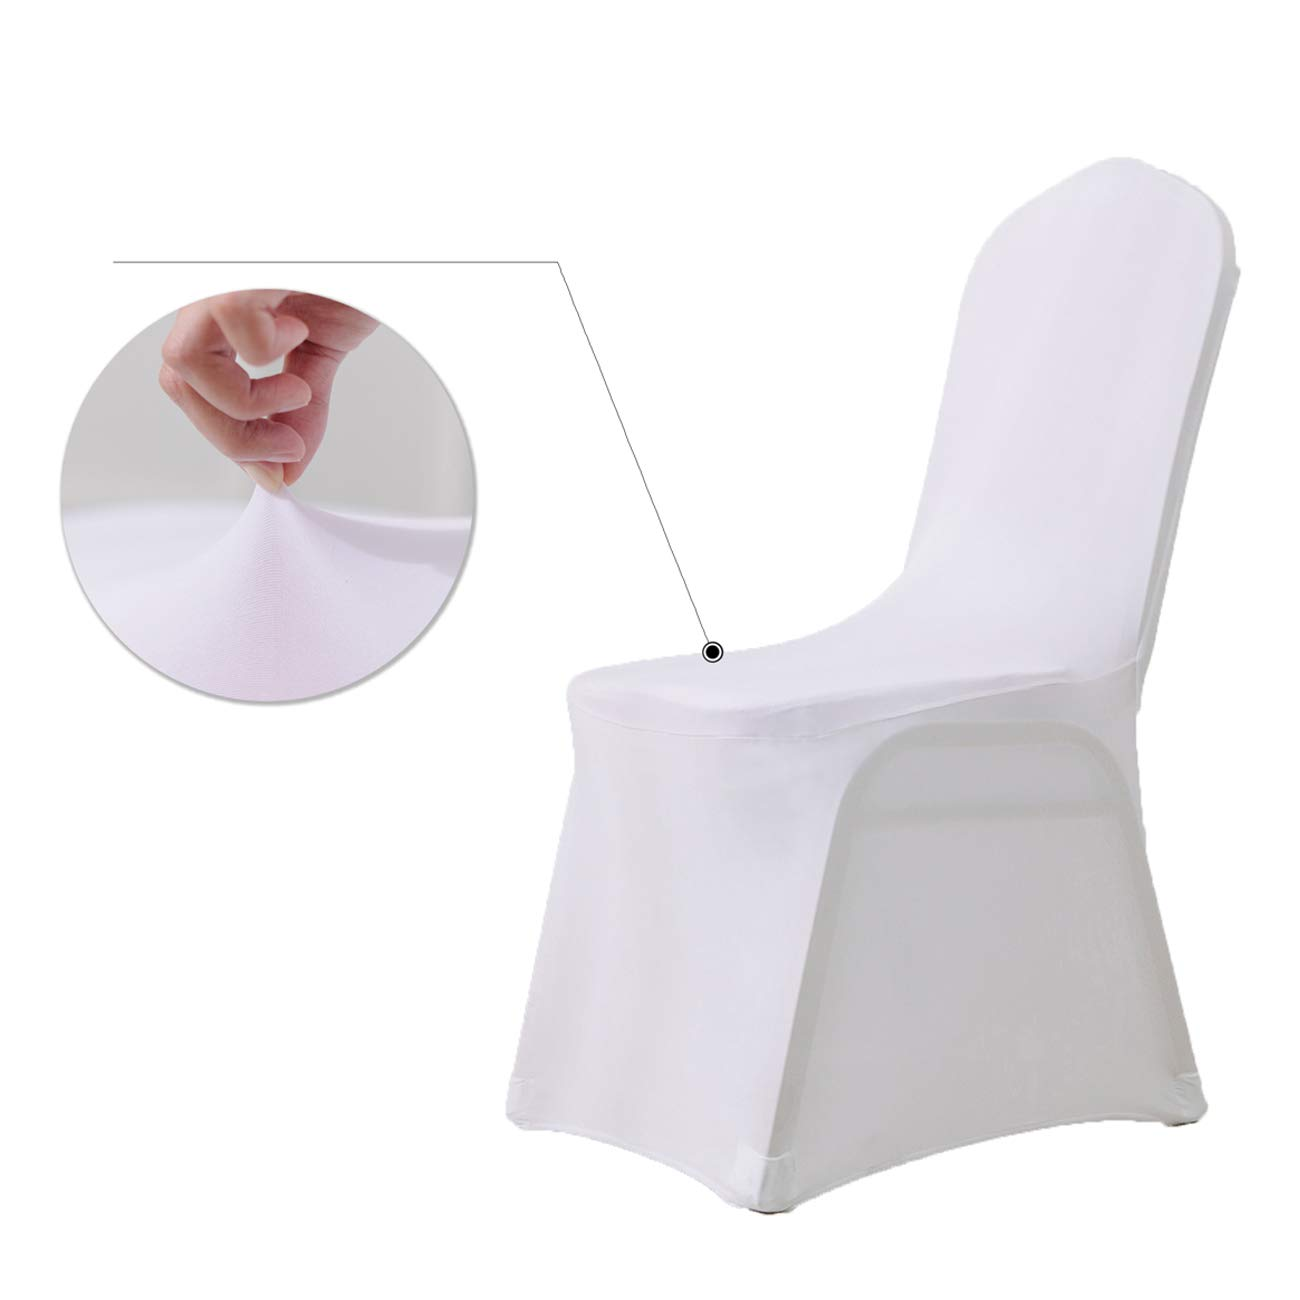 NANPIPER Chair Covers for Wedding White Set of 12pcs Polyester Spandex Banquet Party Chair Cover NPCC01W